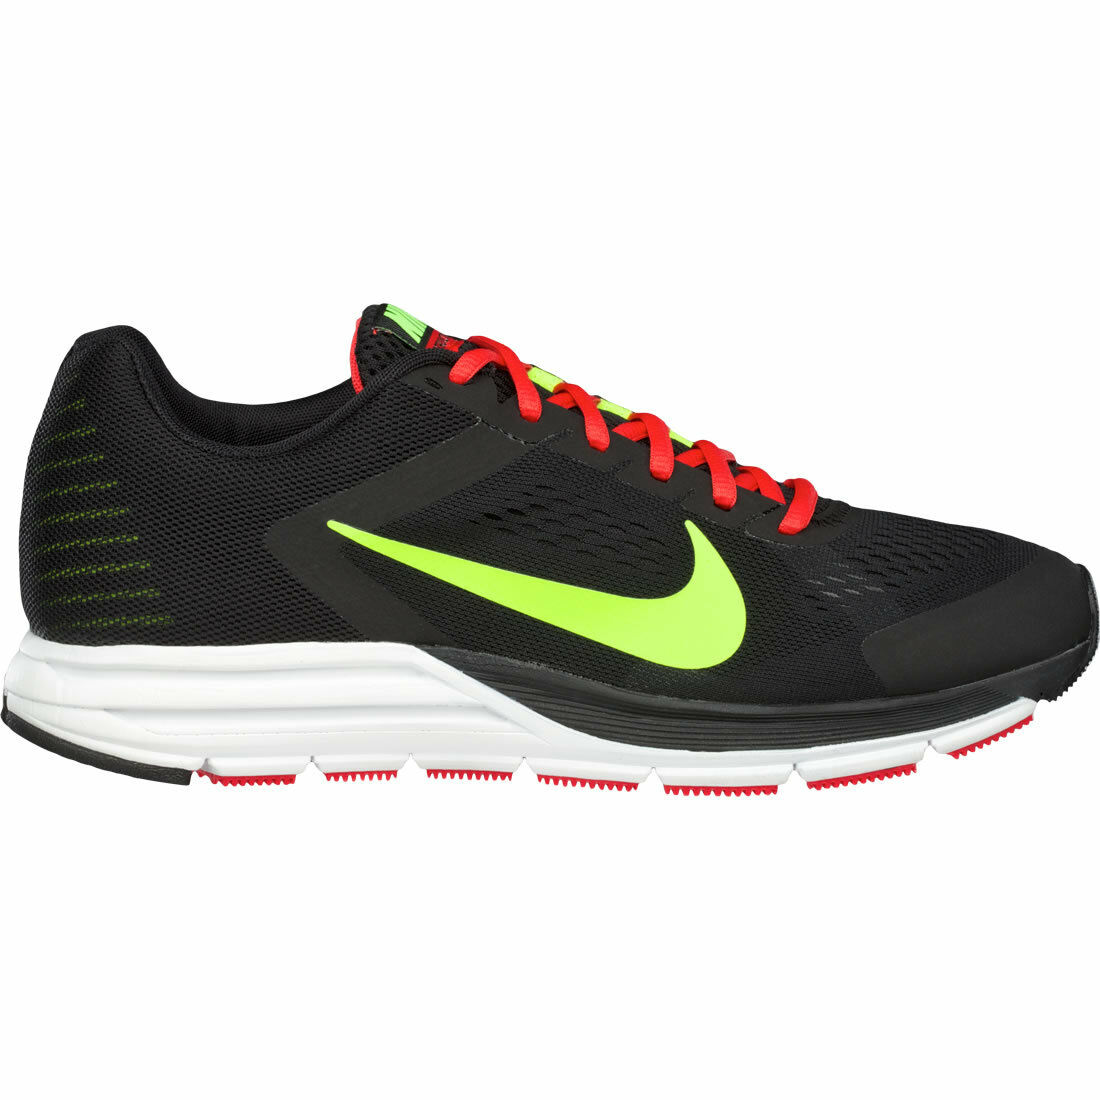 44355d94728 Nike Zoom Structure + + + 17 size NUEVO Zapatillas running NEGRAS ...